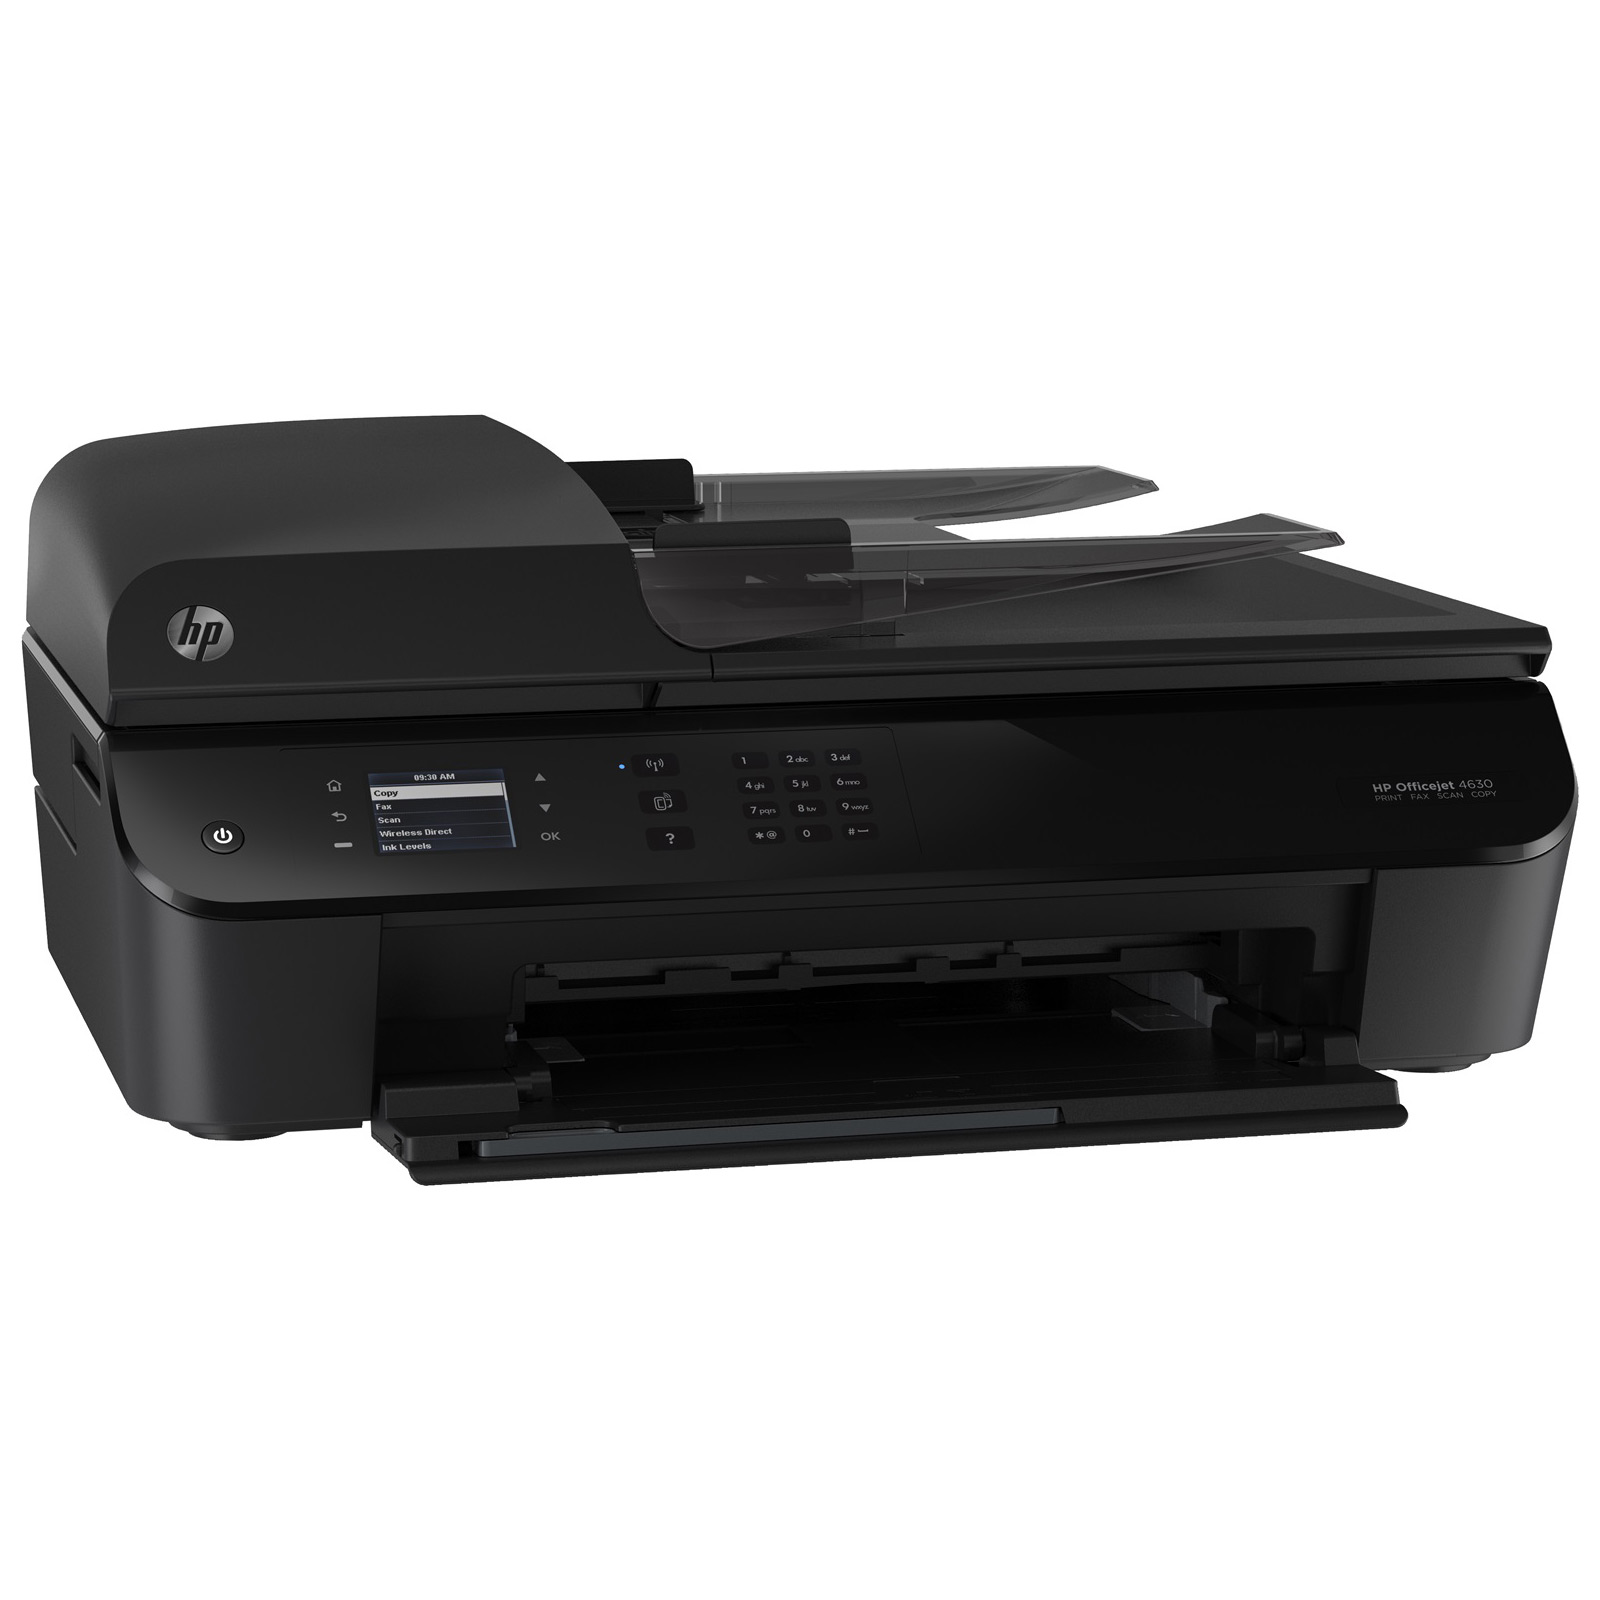 hp officejet 4630 imprimante multifonction hp sur. Black Bedroom Furniture Sets. Home Design Ideas